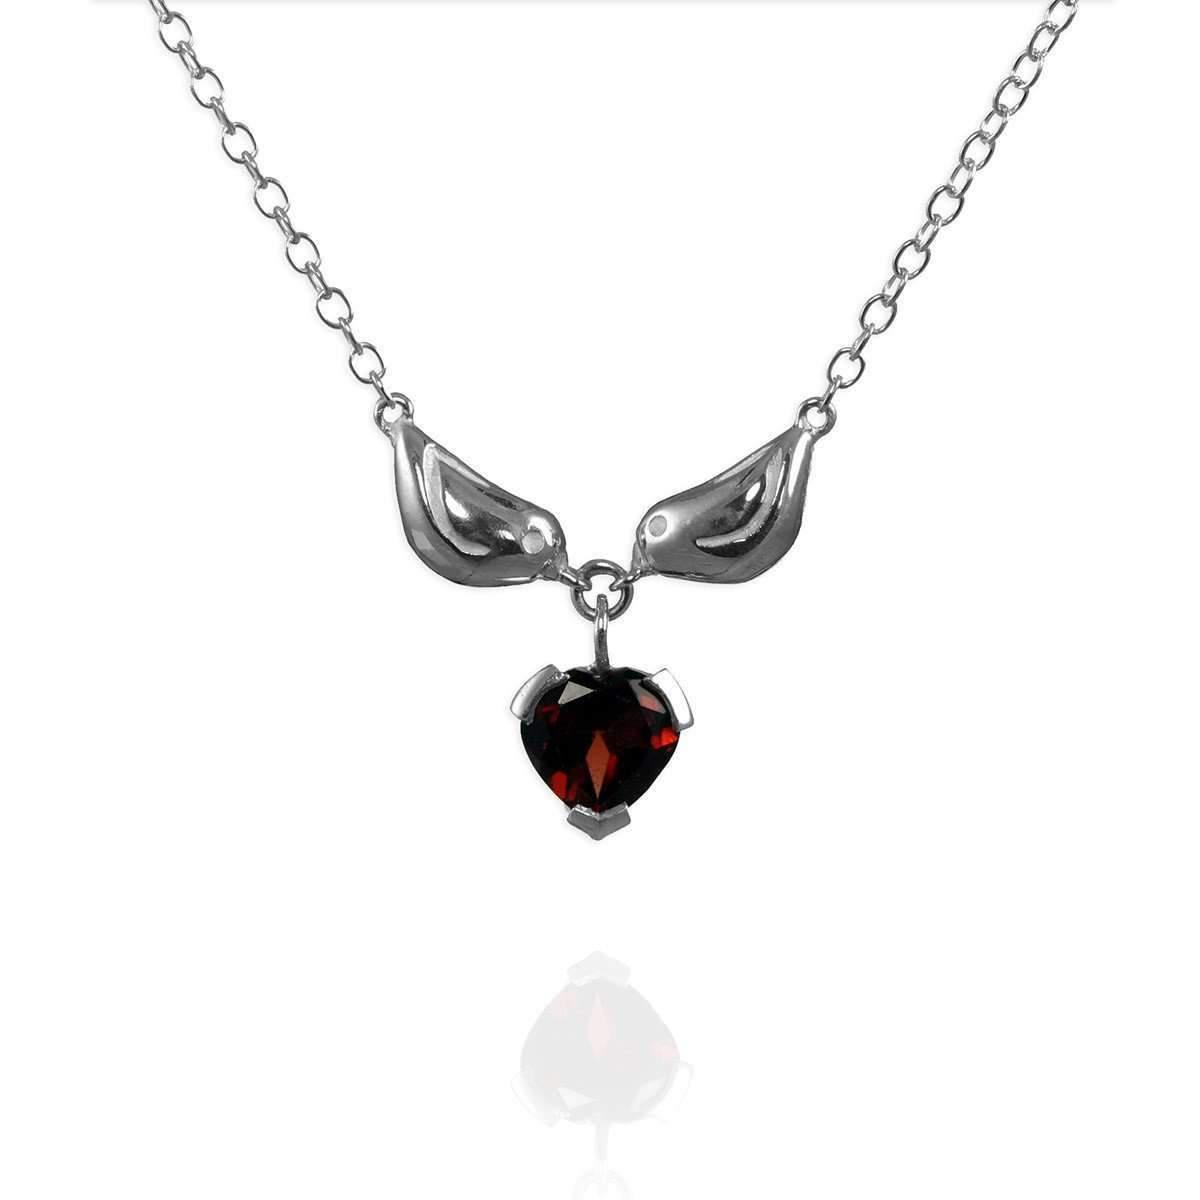 Jana Reinhardt Sterling Silver & Ruby Little Sparrow Charm Necklace - 42cm (16) VJcUt1a